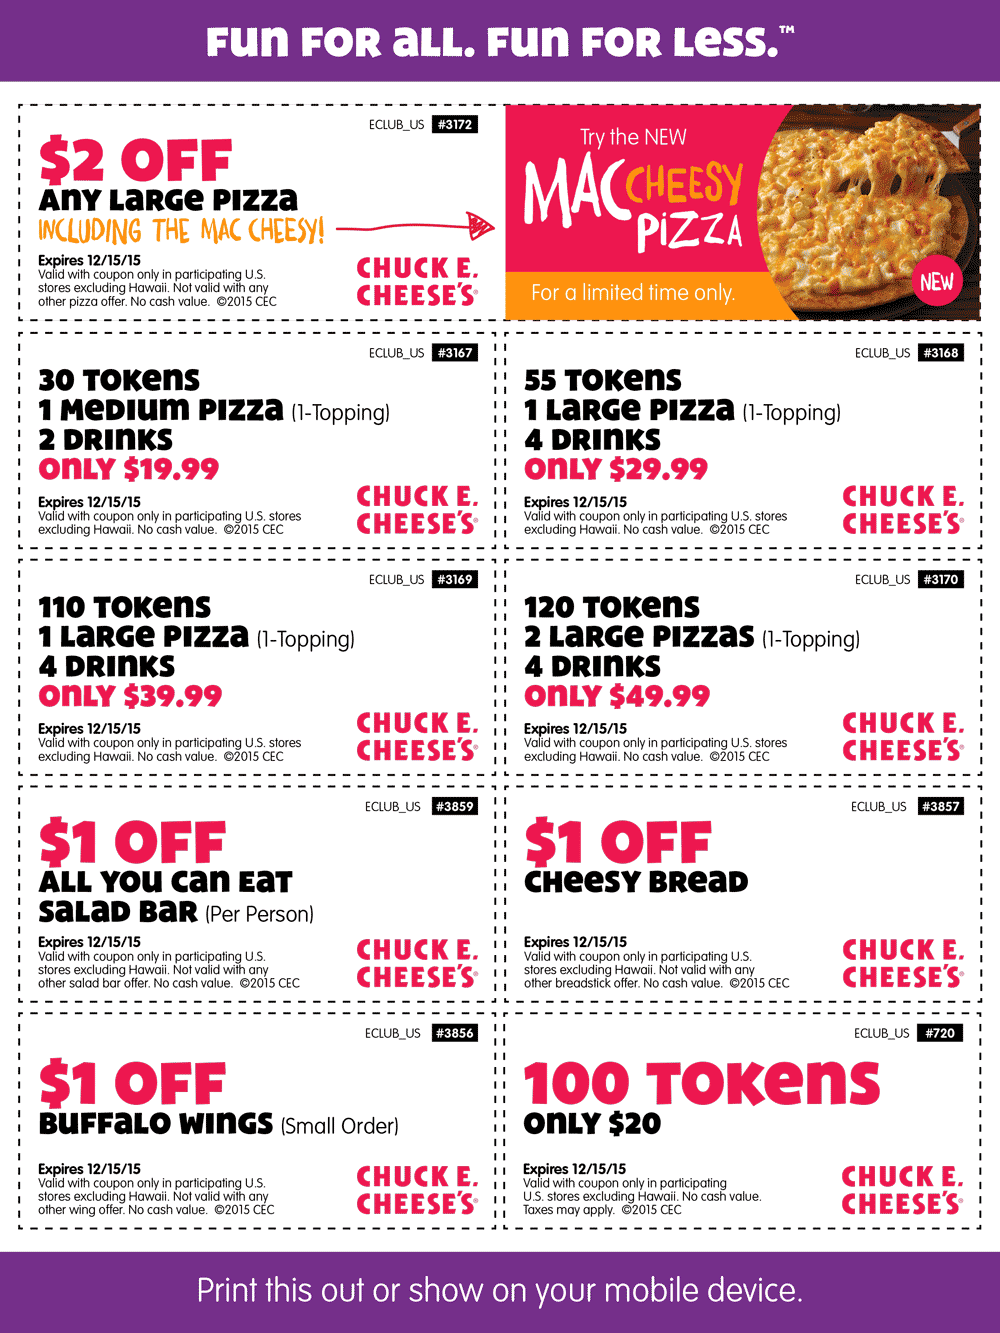 Chuck E. Cheese Coupon June 2017 30 tokens + pizza + drinks or 100 tokens for $20 & more at Chuck E. Cheese